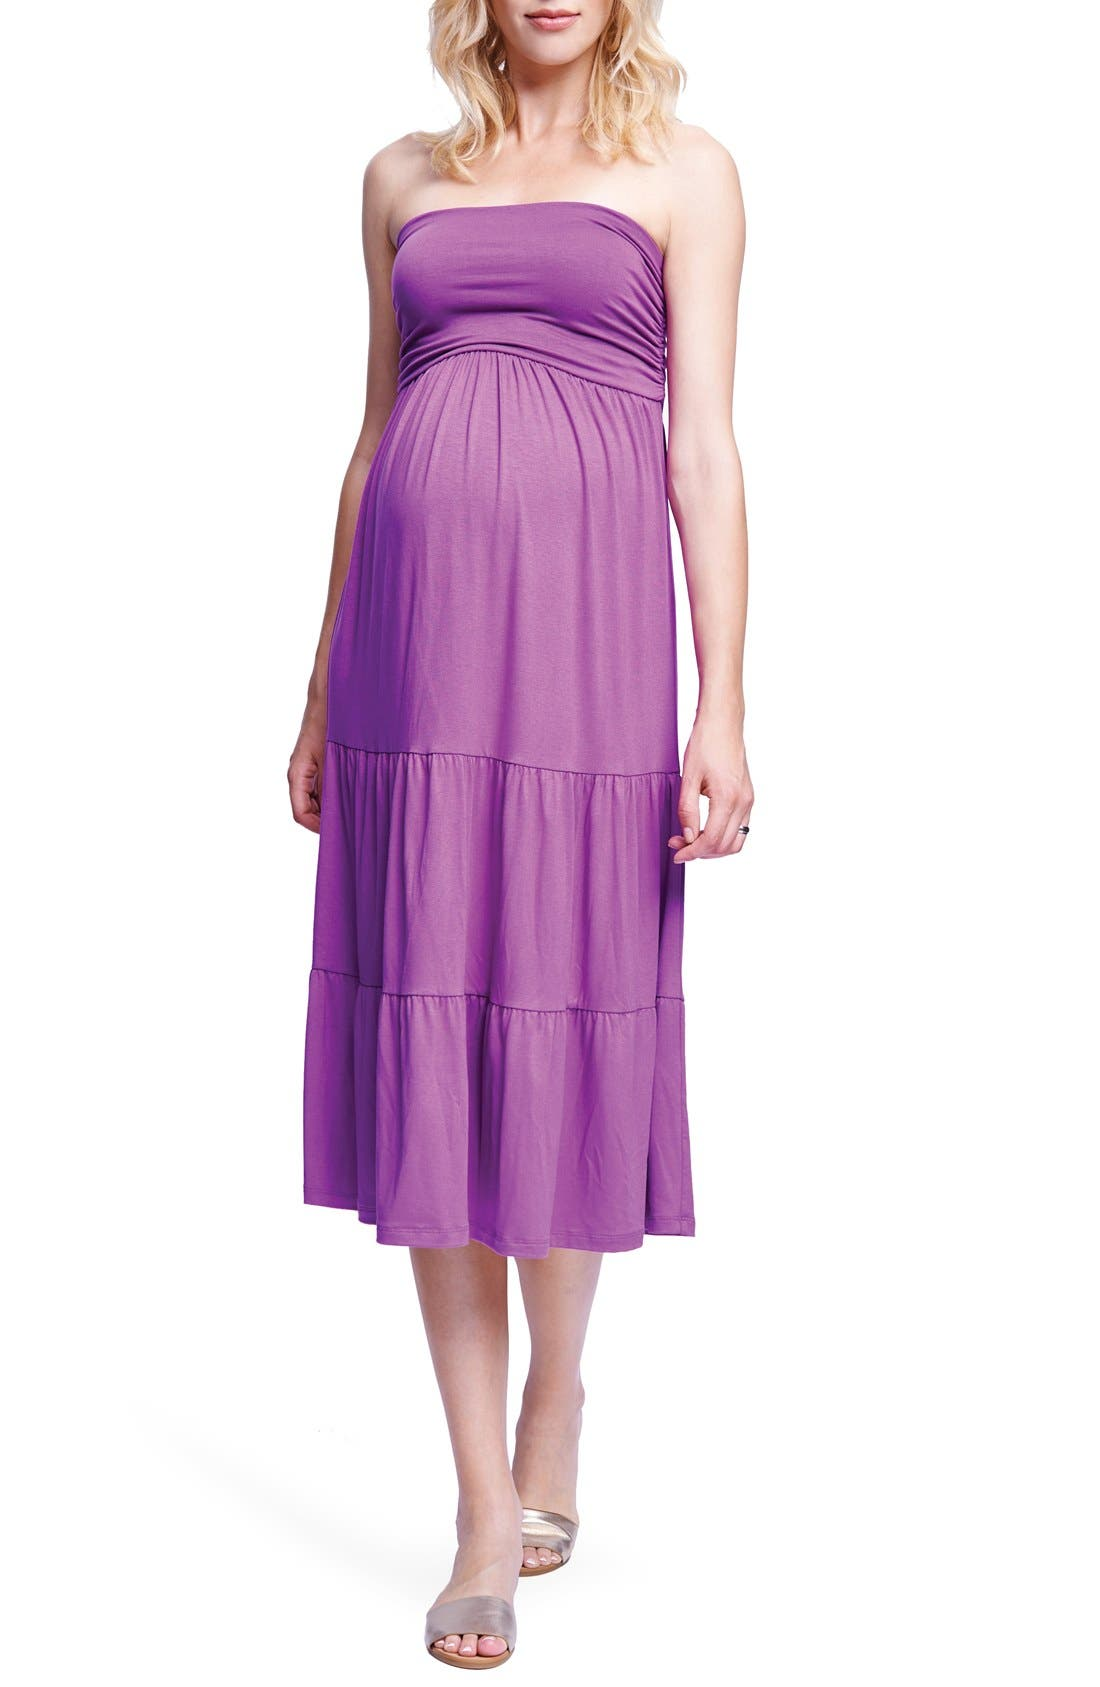 Alternate Image 1 Selected - Maternal America Convertible Strapless Maternity Dress